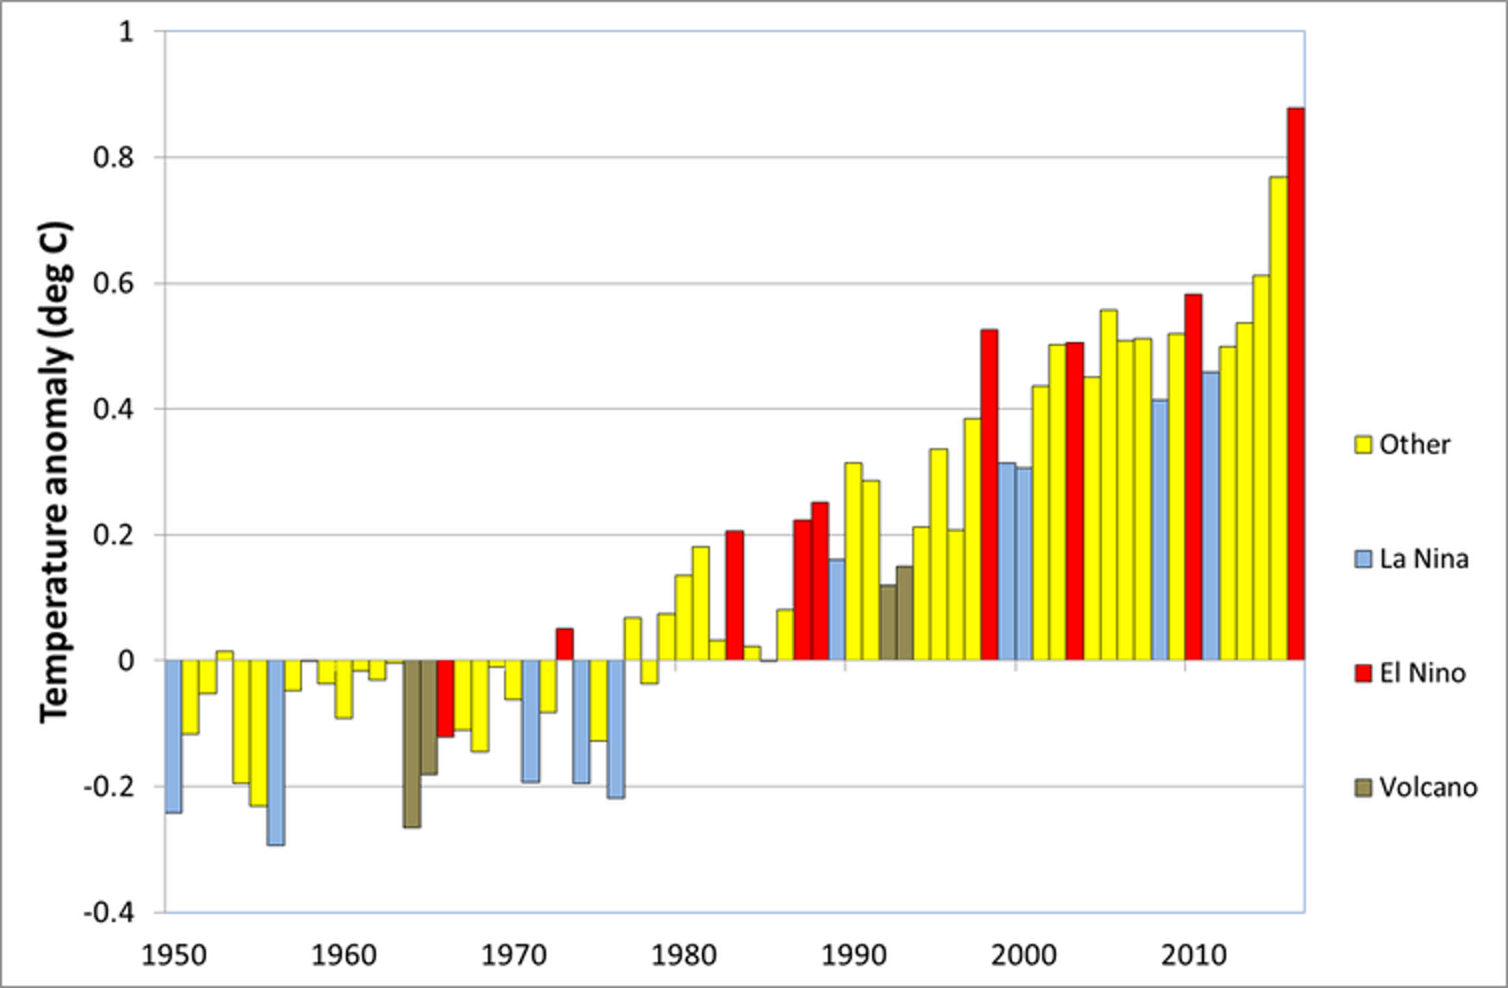 Global temperature anomalies (difference from 1961-90 average) for 1950 to 2016, showing strong El Niño and La Niña years, and years when climate was affected by volcanoes.